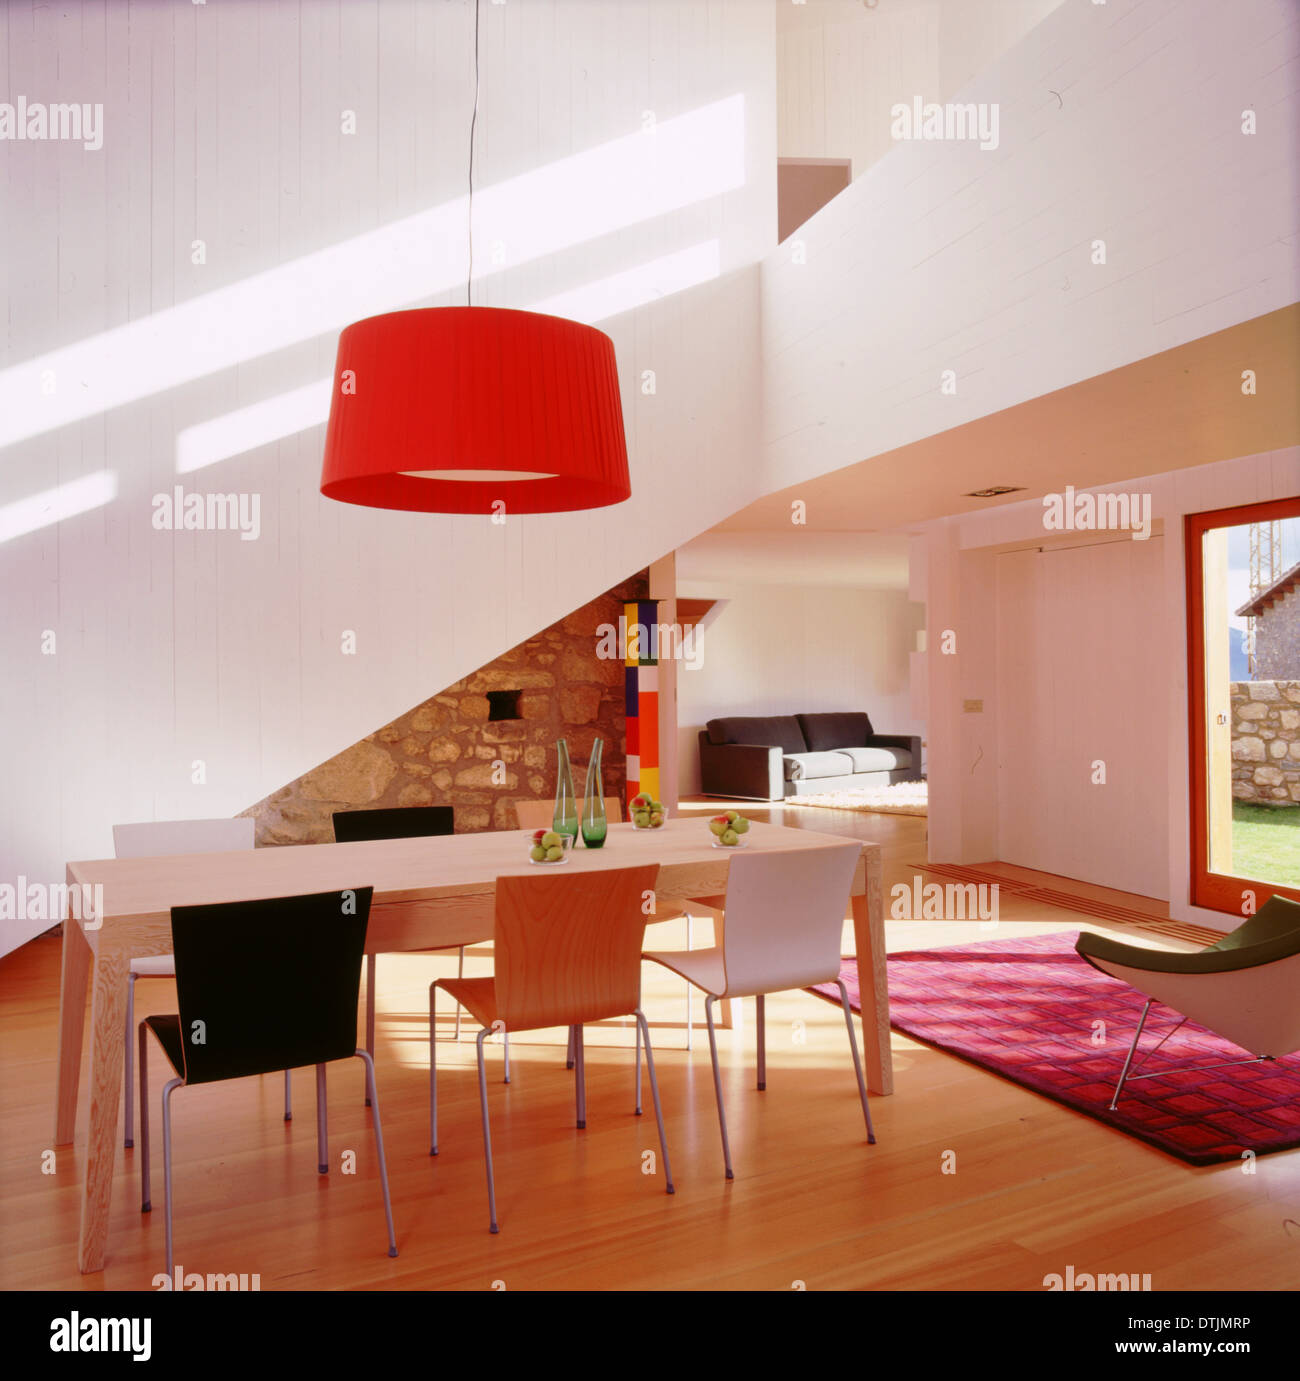 Delightful Dining Room With Red Pendant Light In Lles, Cerdanya, Lleida, Catalonia,  Spain